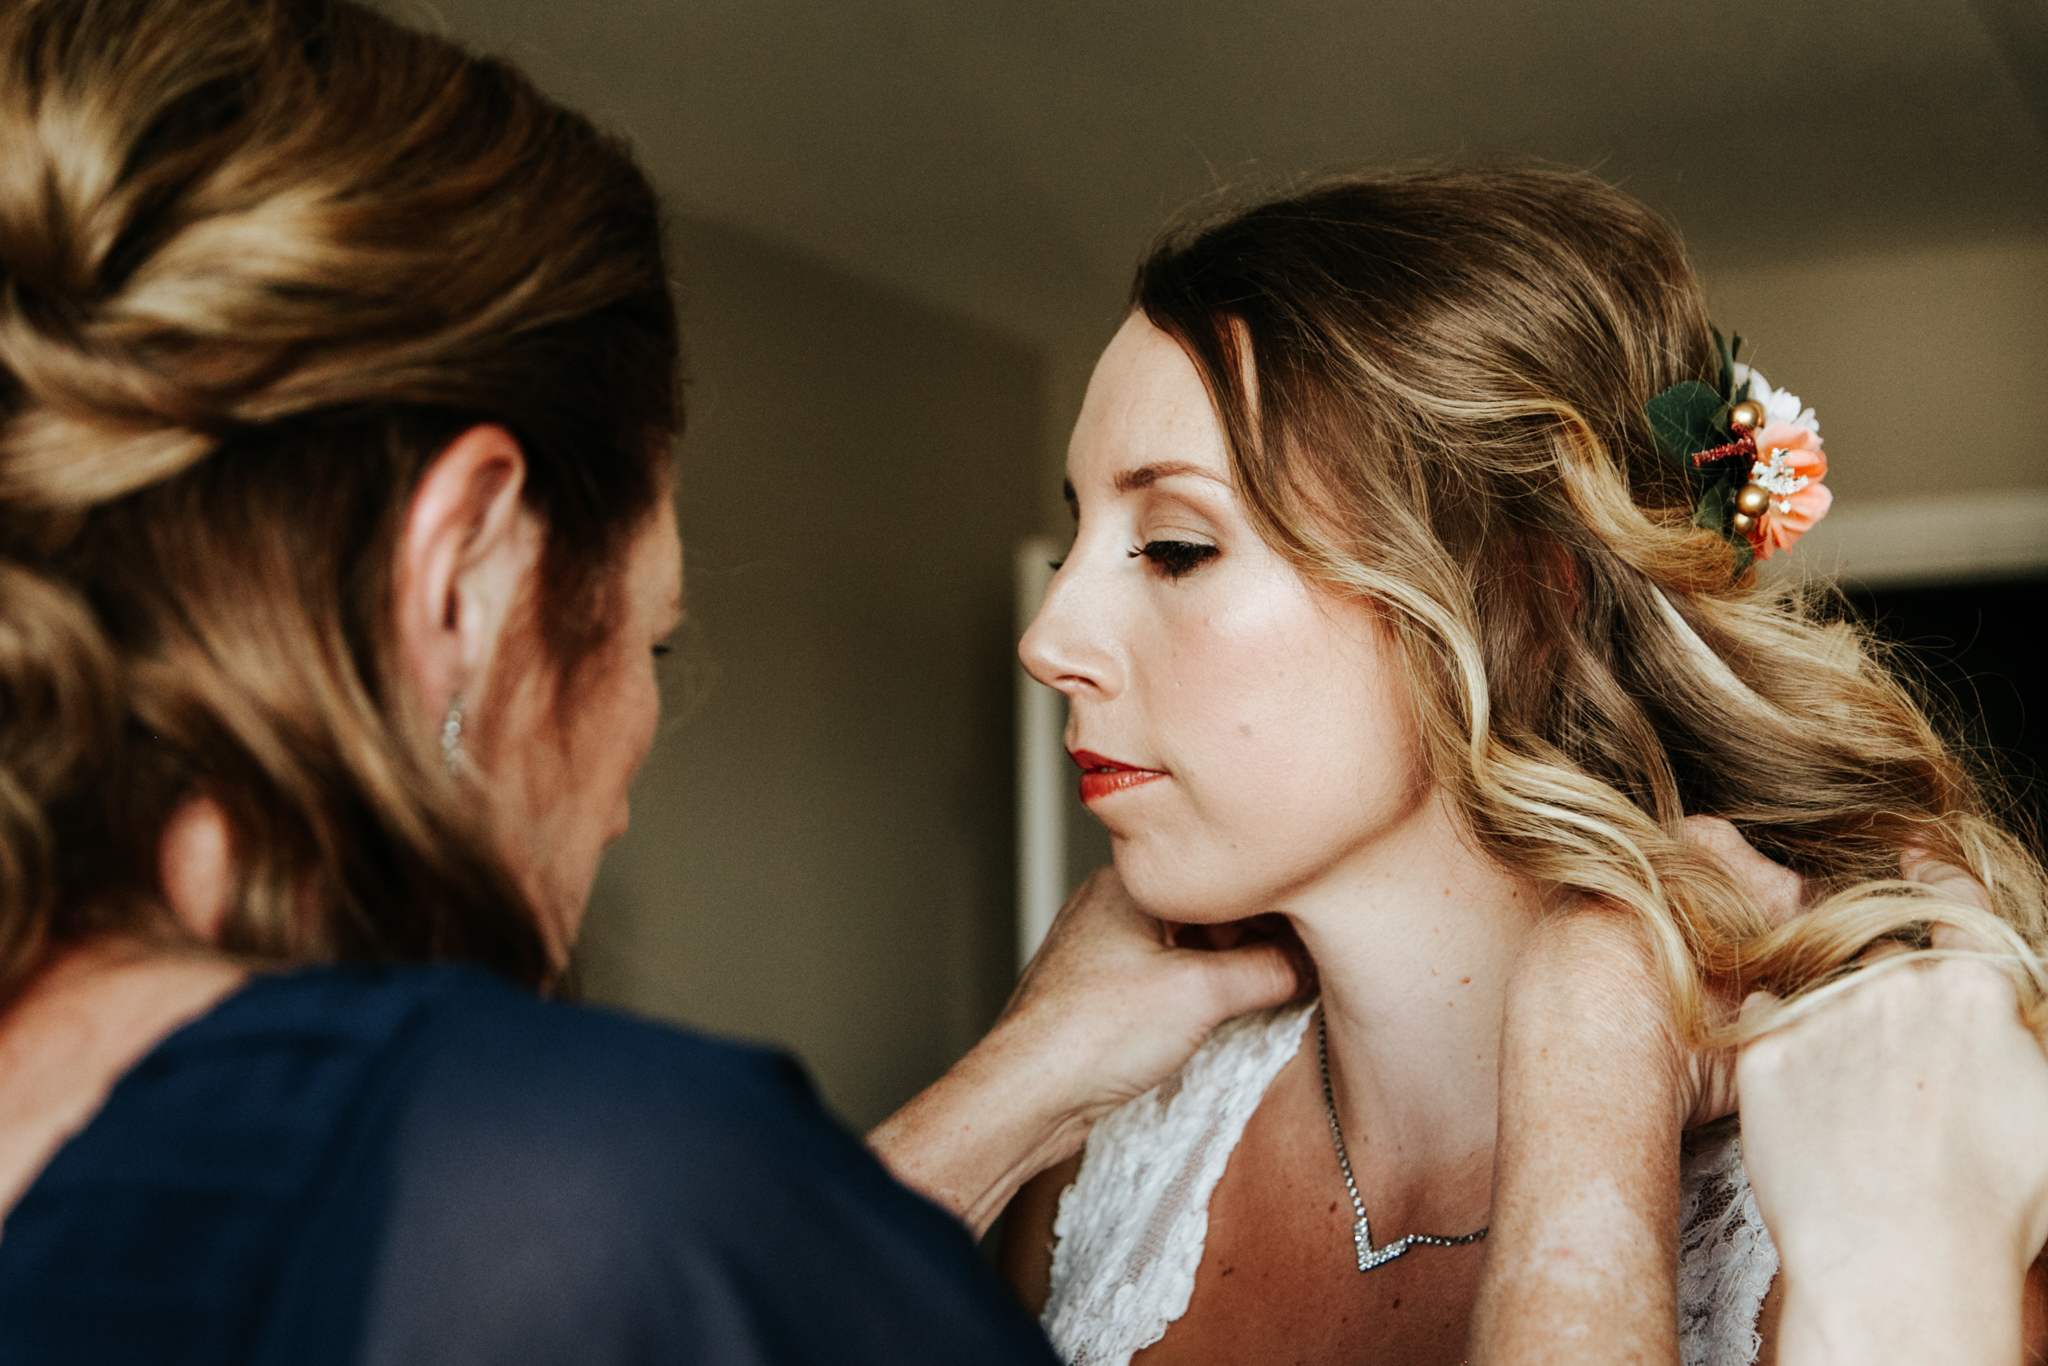 lethbridge-wedding-photographer-love-and-be-loved-photography-bride-prep-photo-image-picture-9.jpg